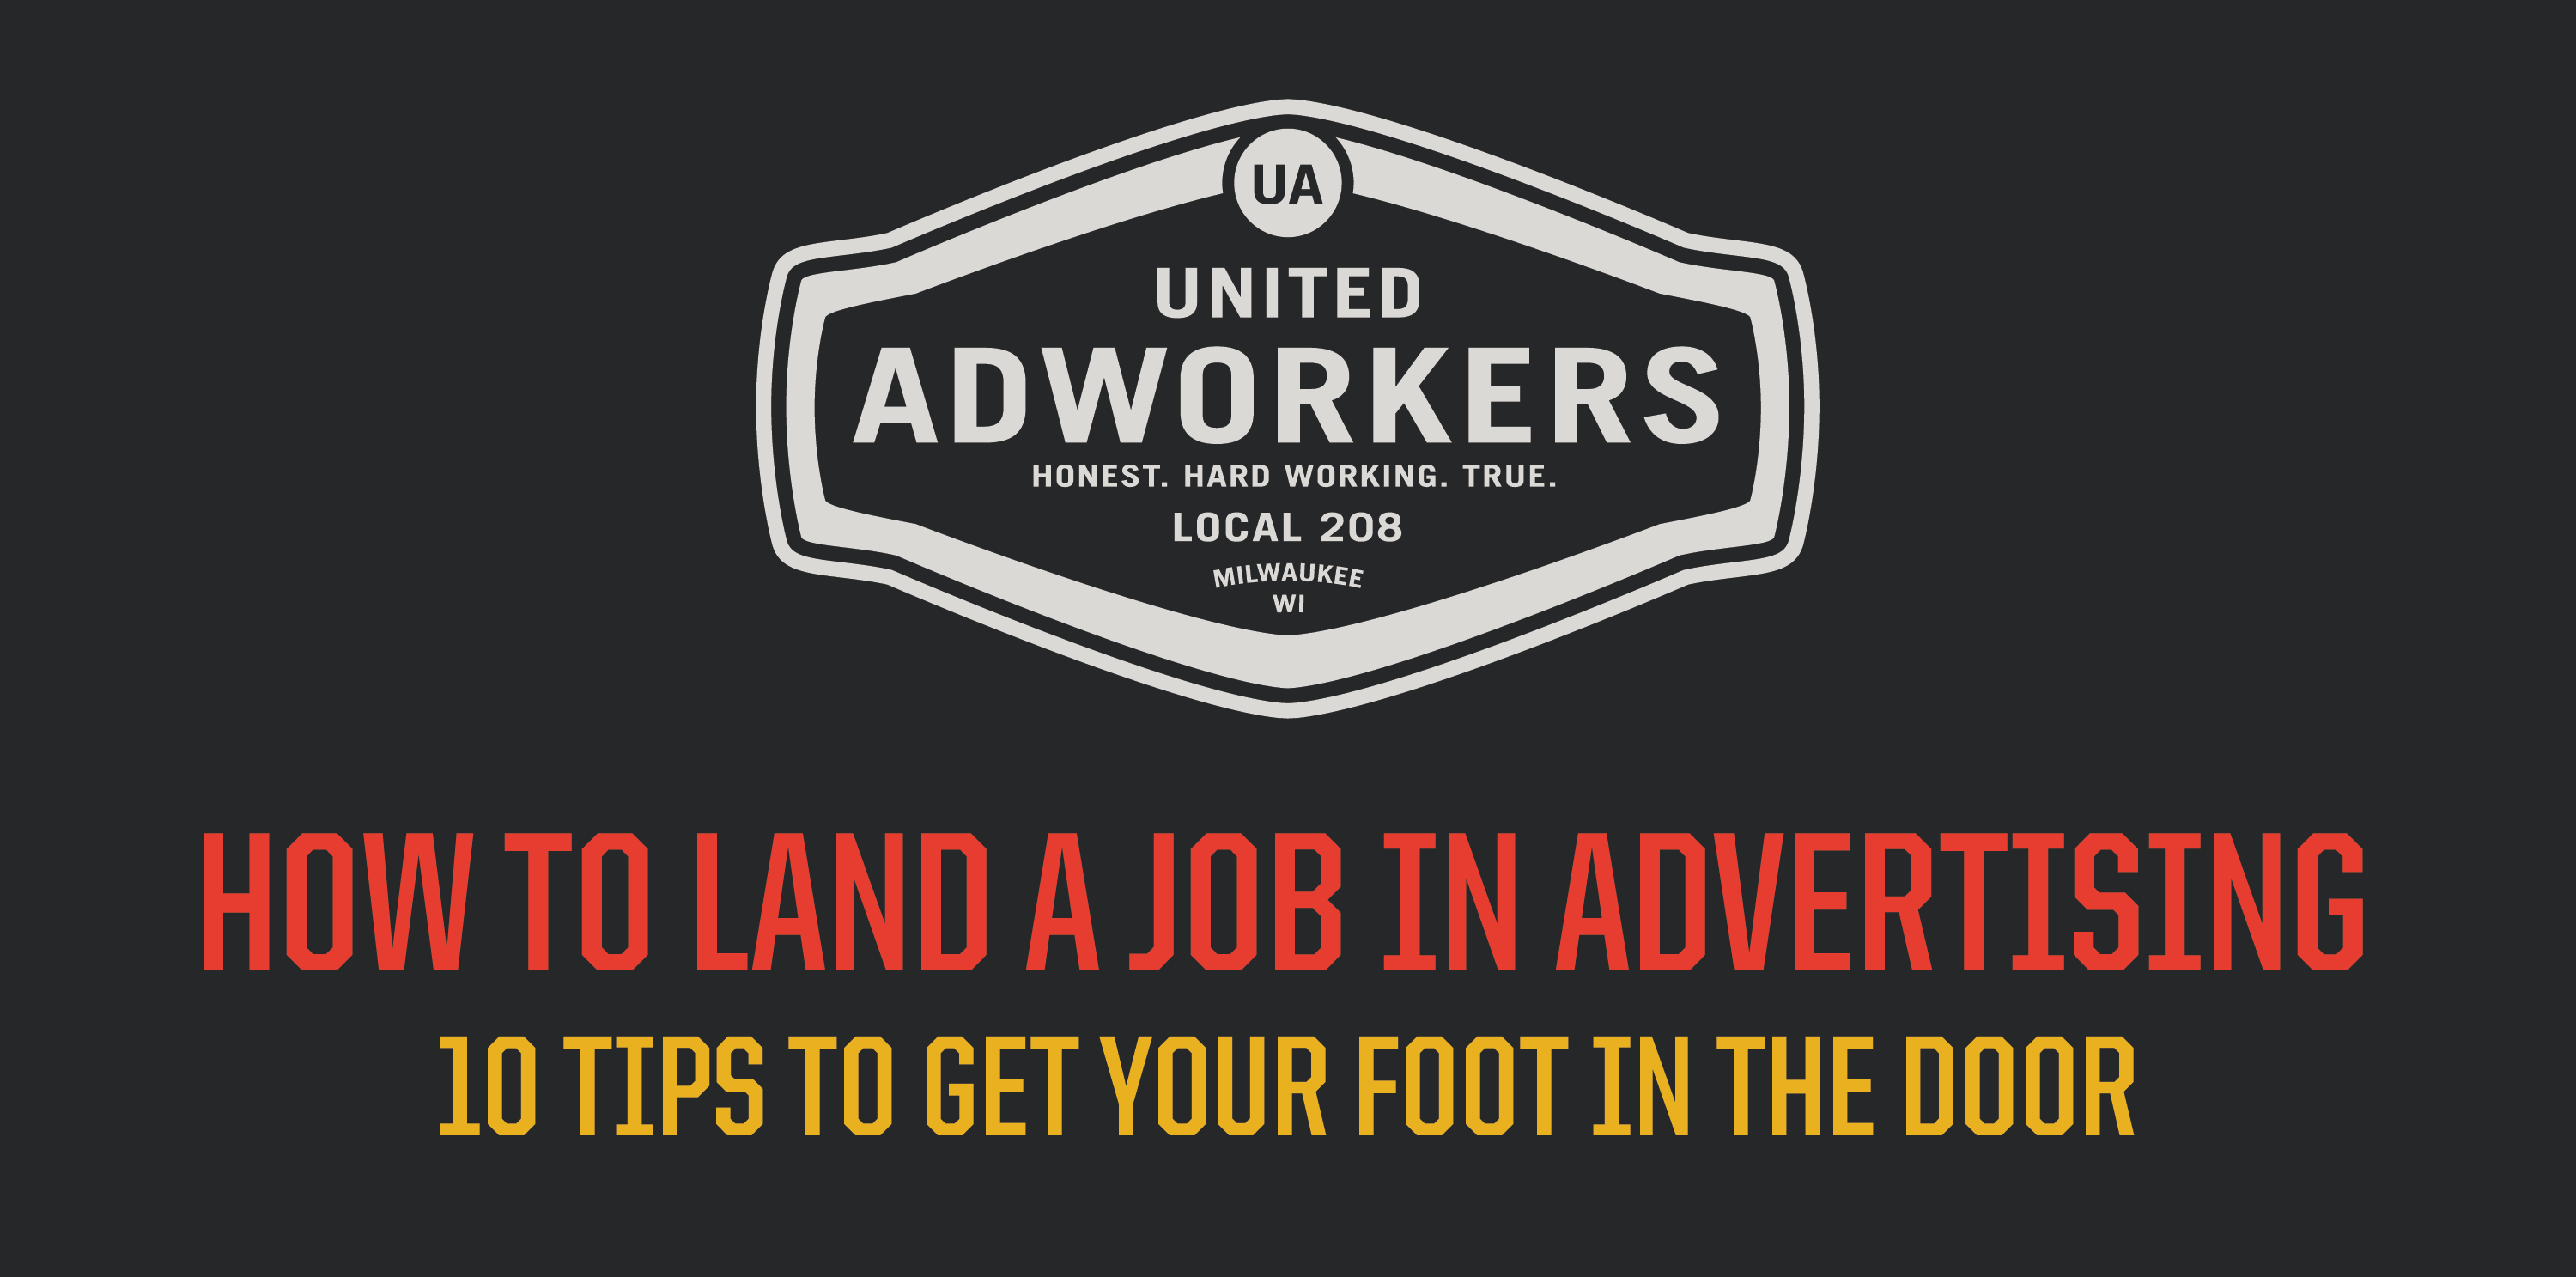 How to Land a Job in Advertising